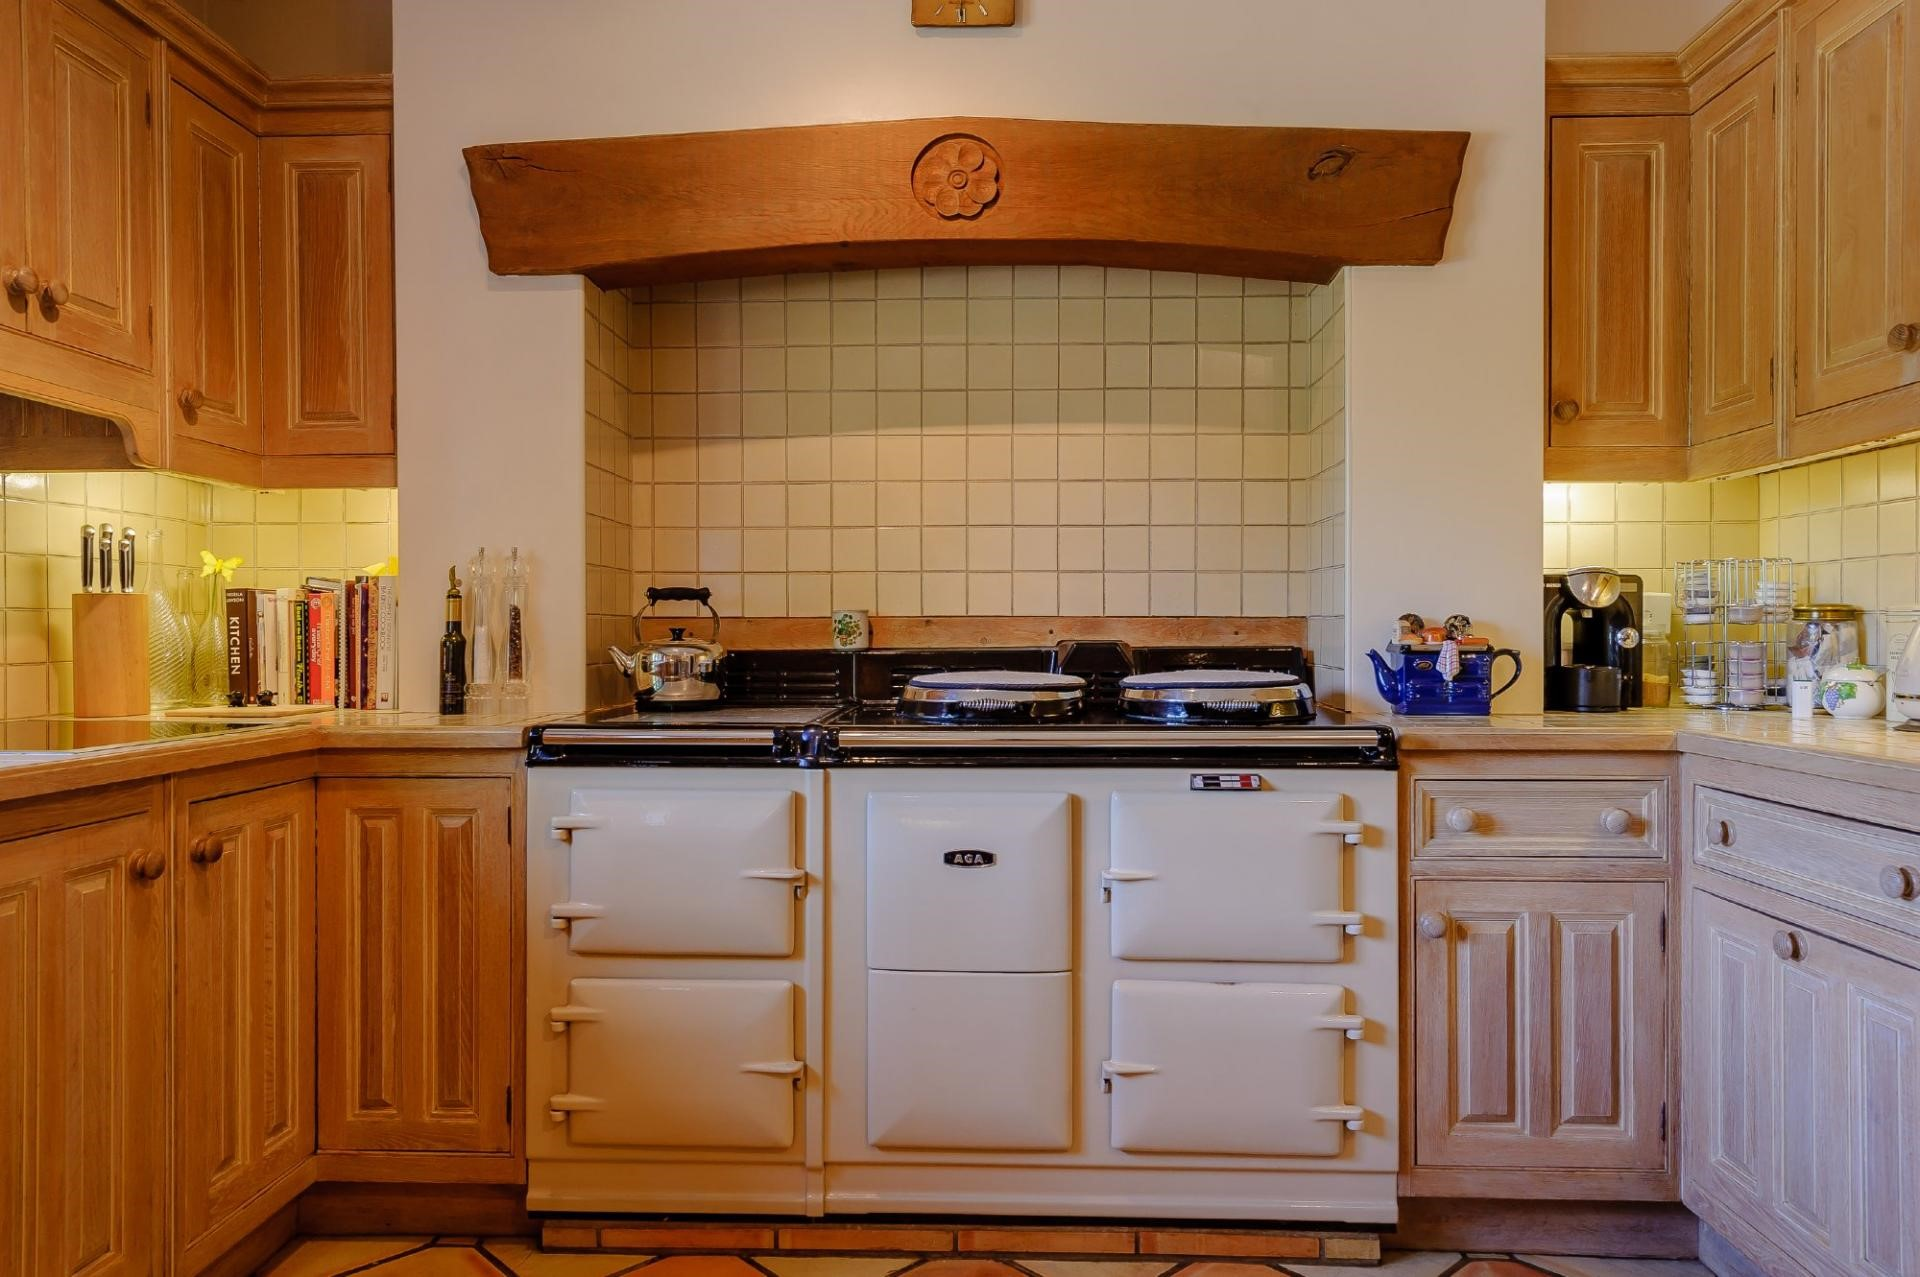 white cream AGA in Inglenook fireplace in traditional unpainted shaker kitchen